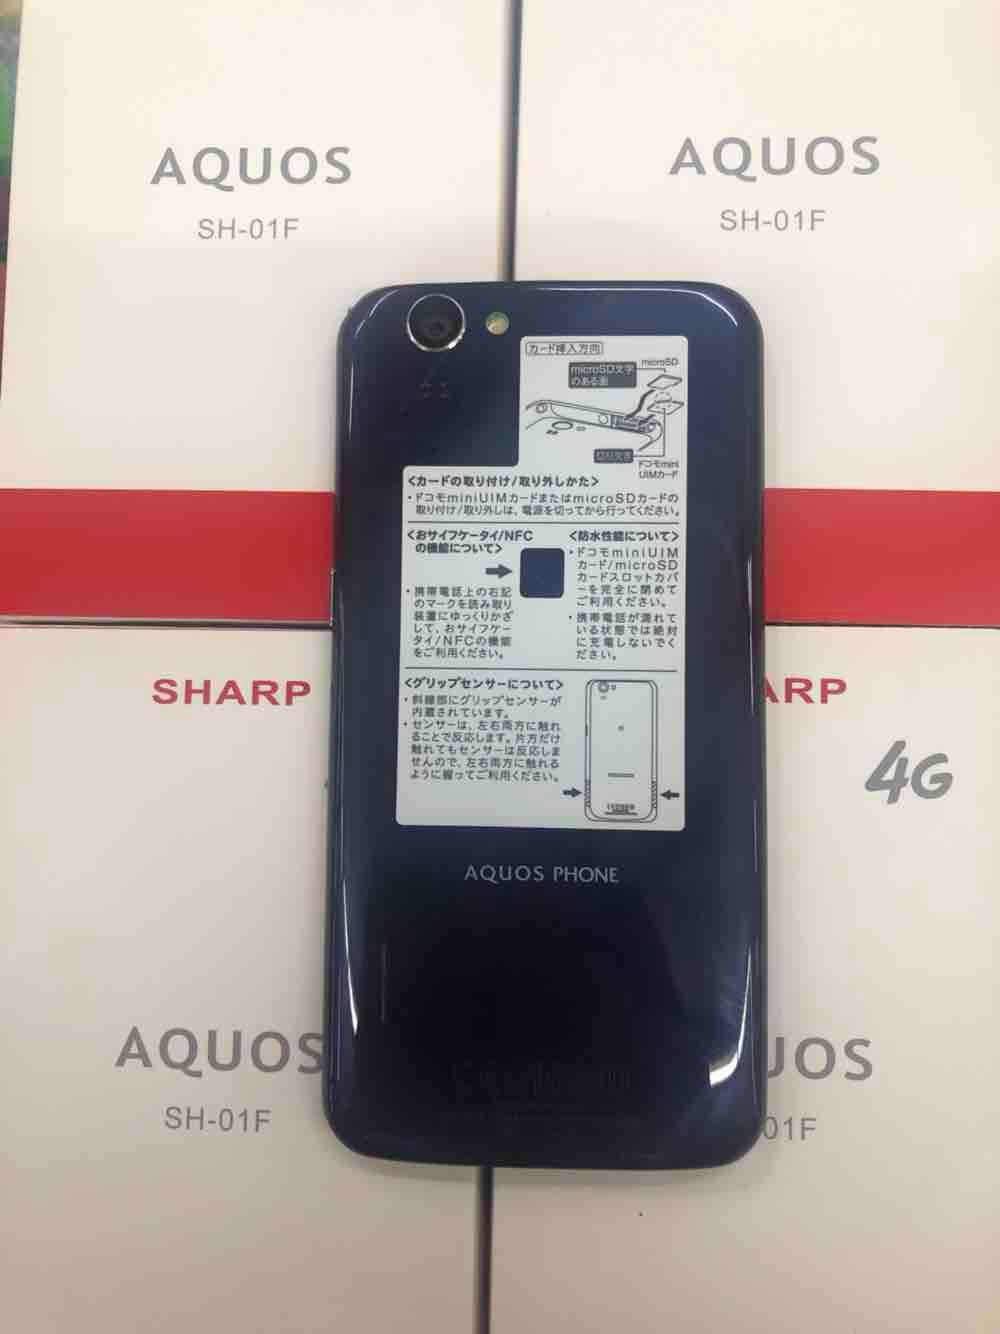 sharp aquos sh-01f